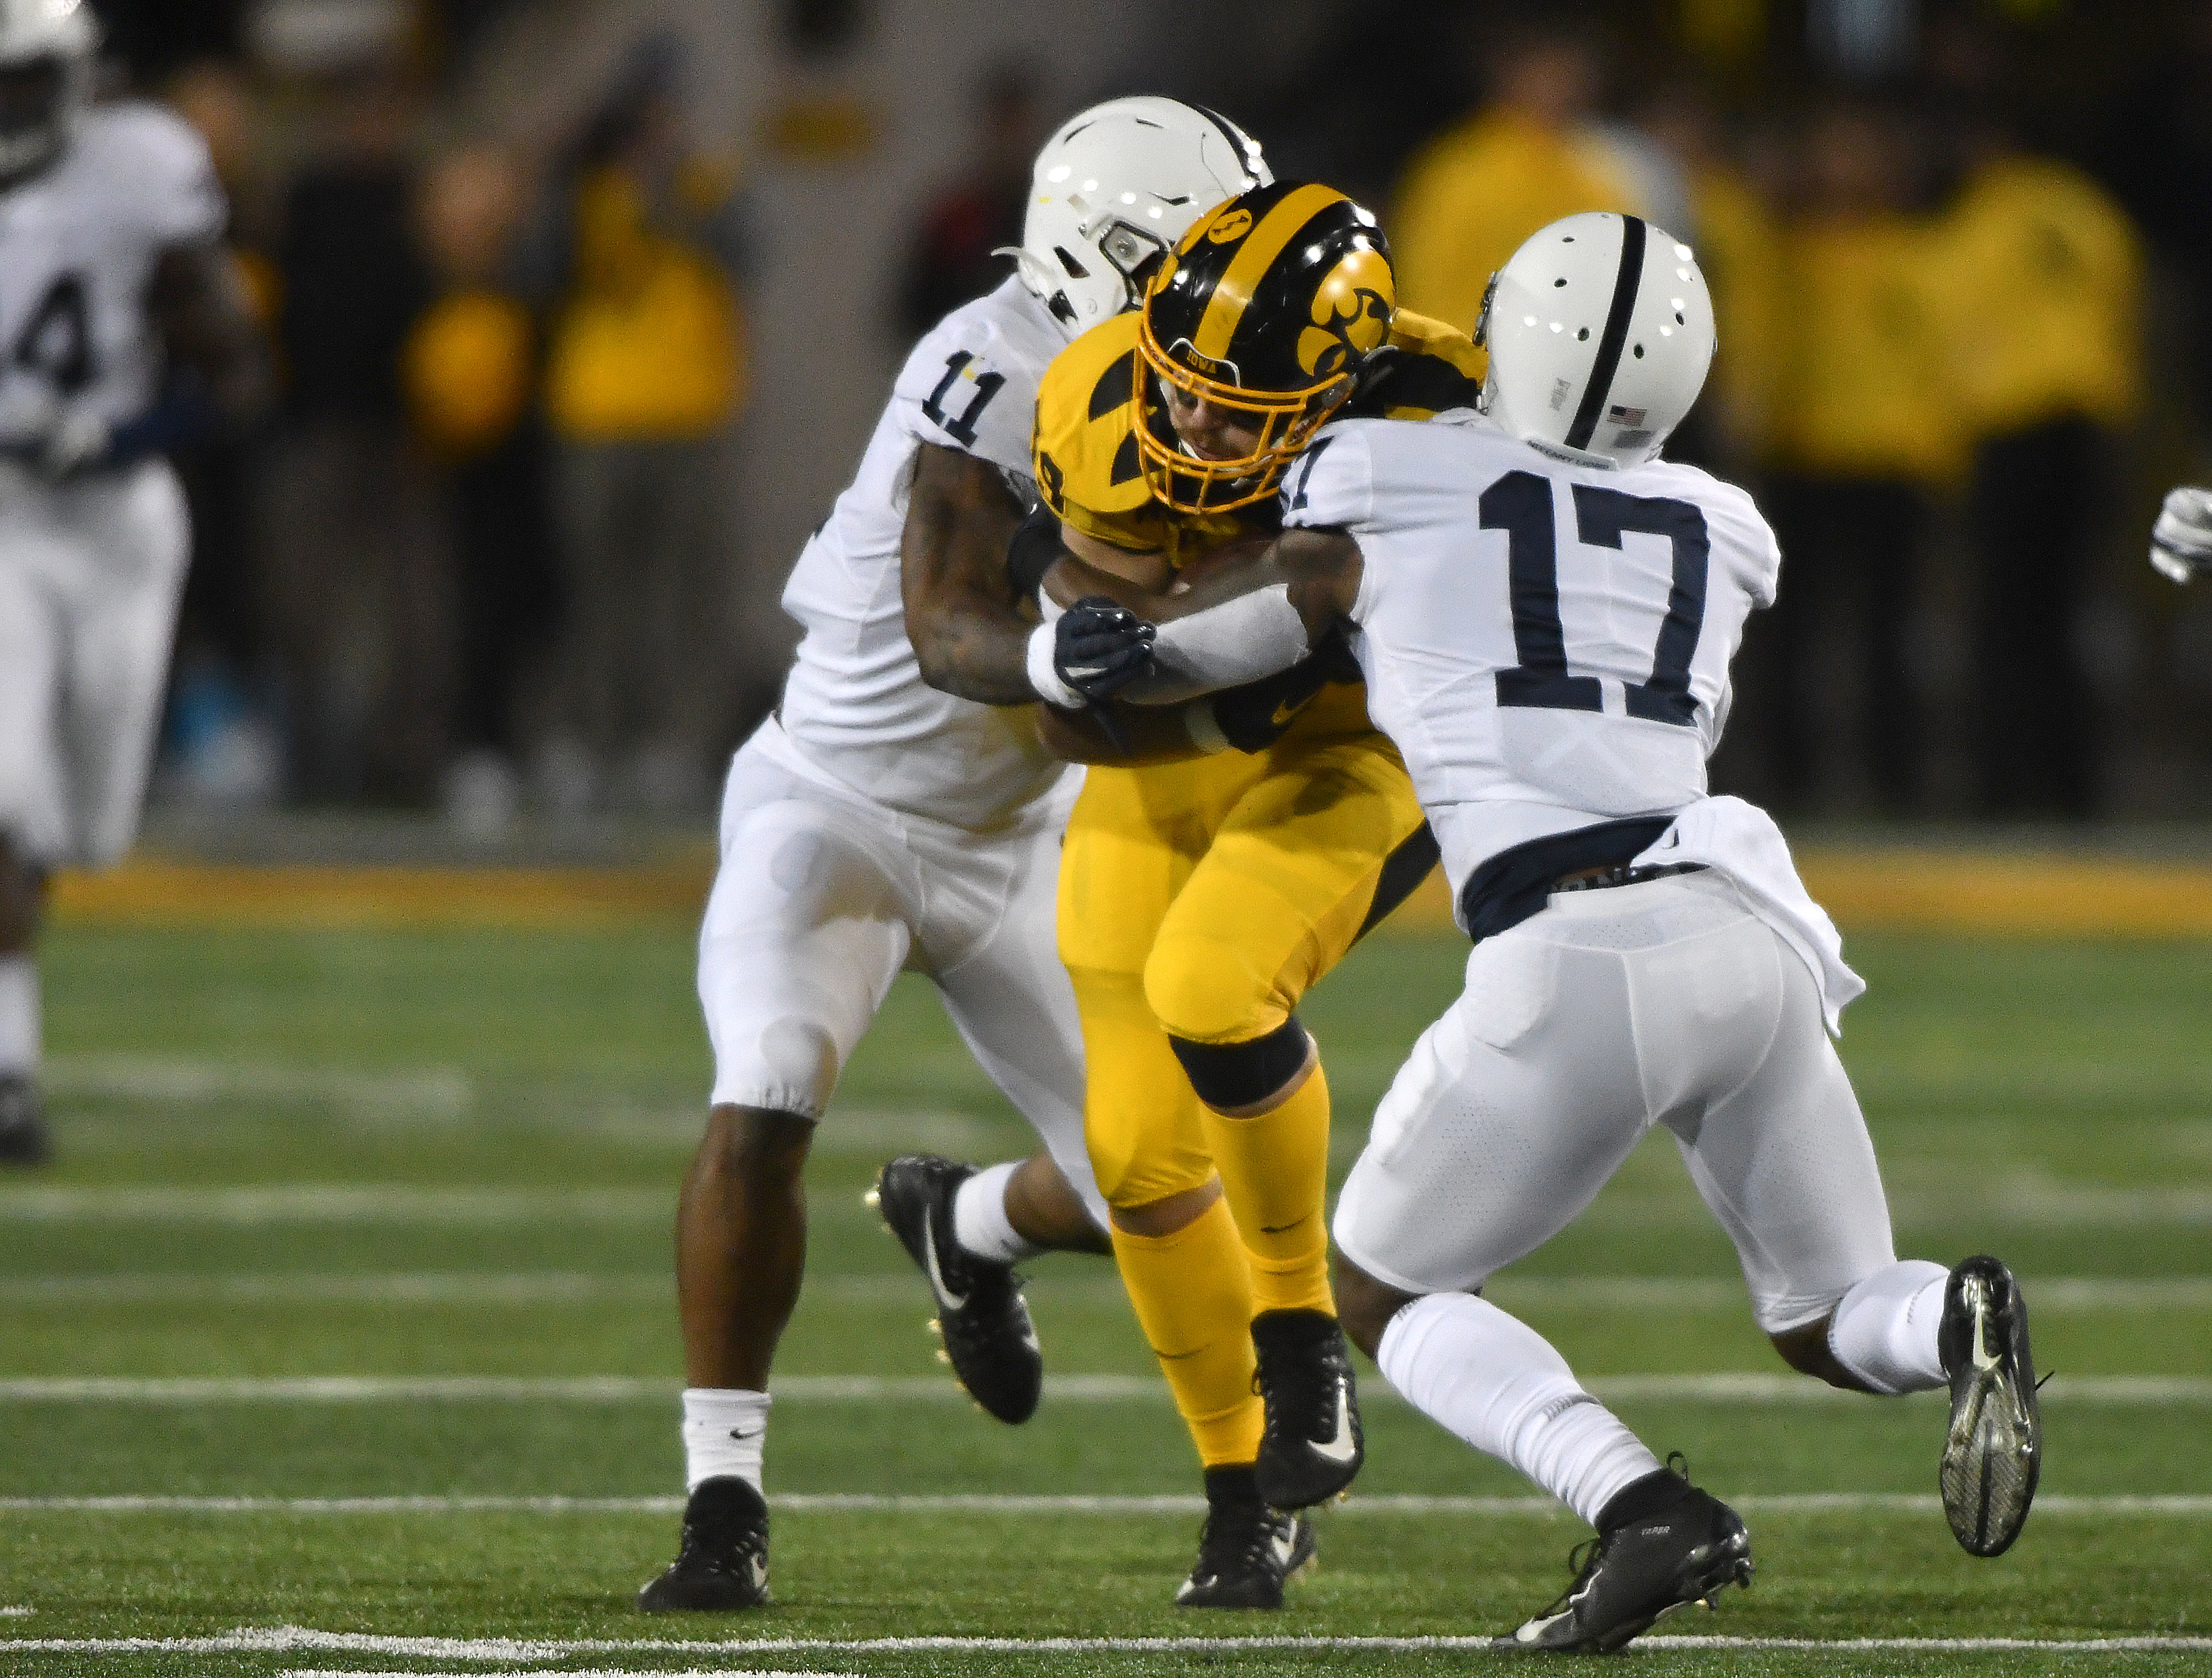 COLLEGE FOOTBALL: OCT 12 Penn State at Iowa